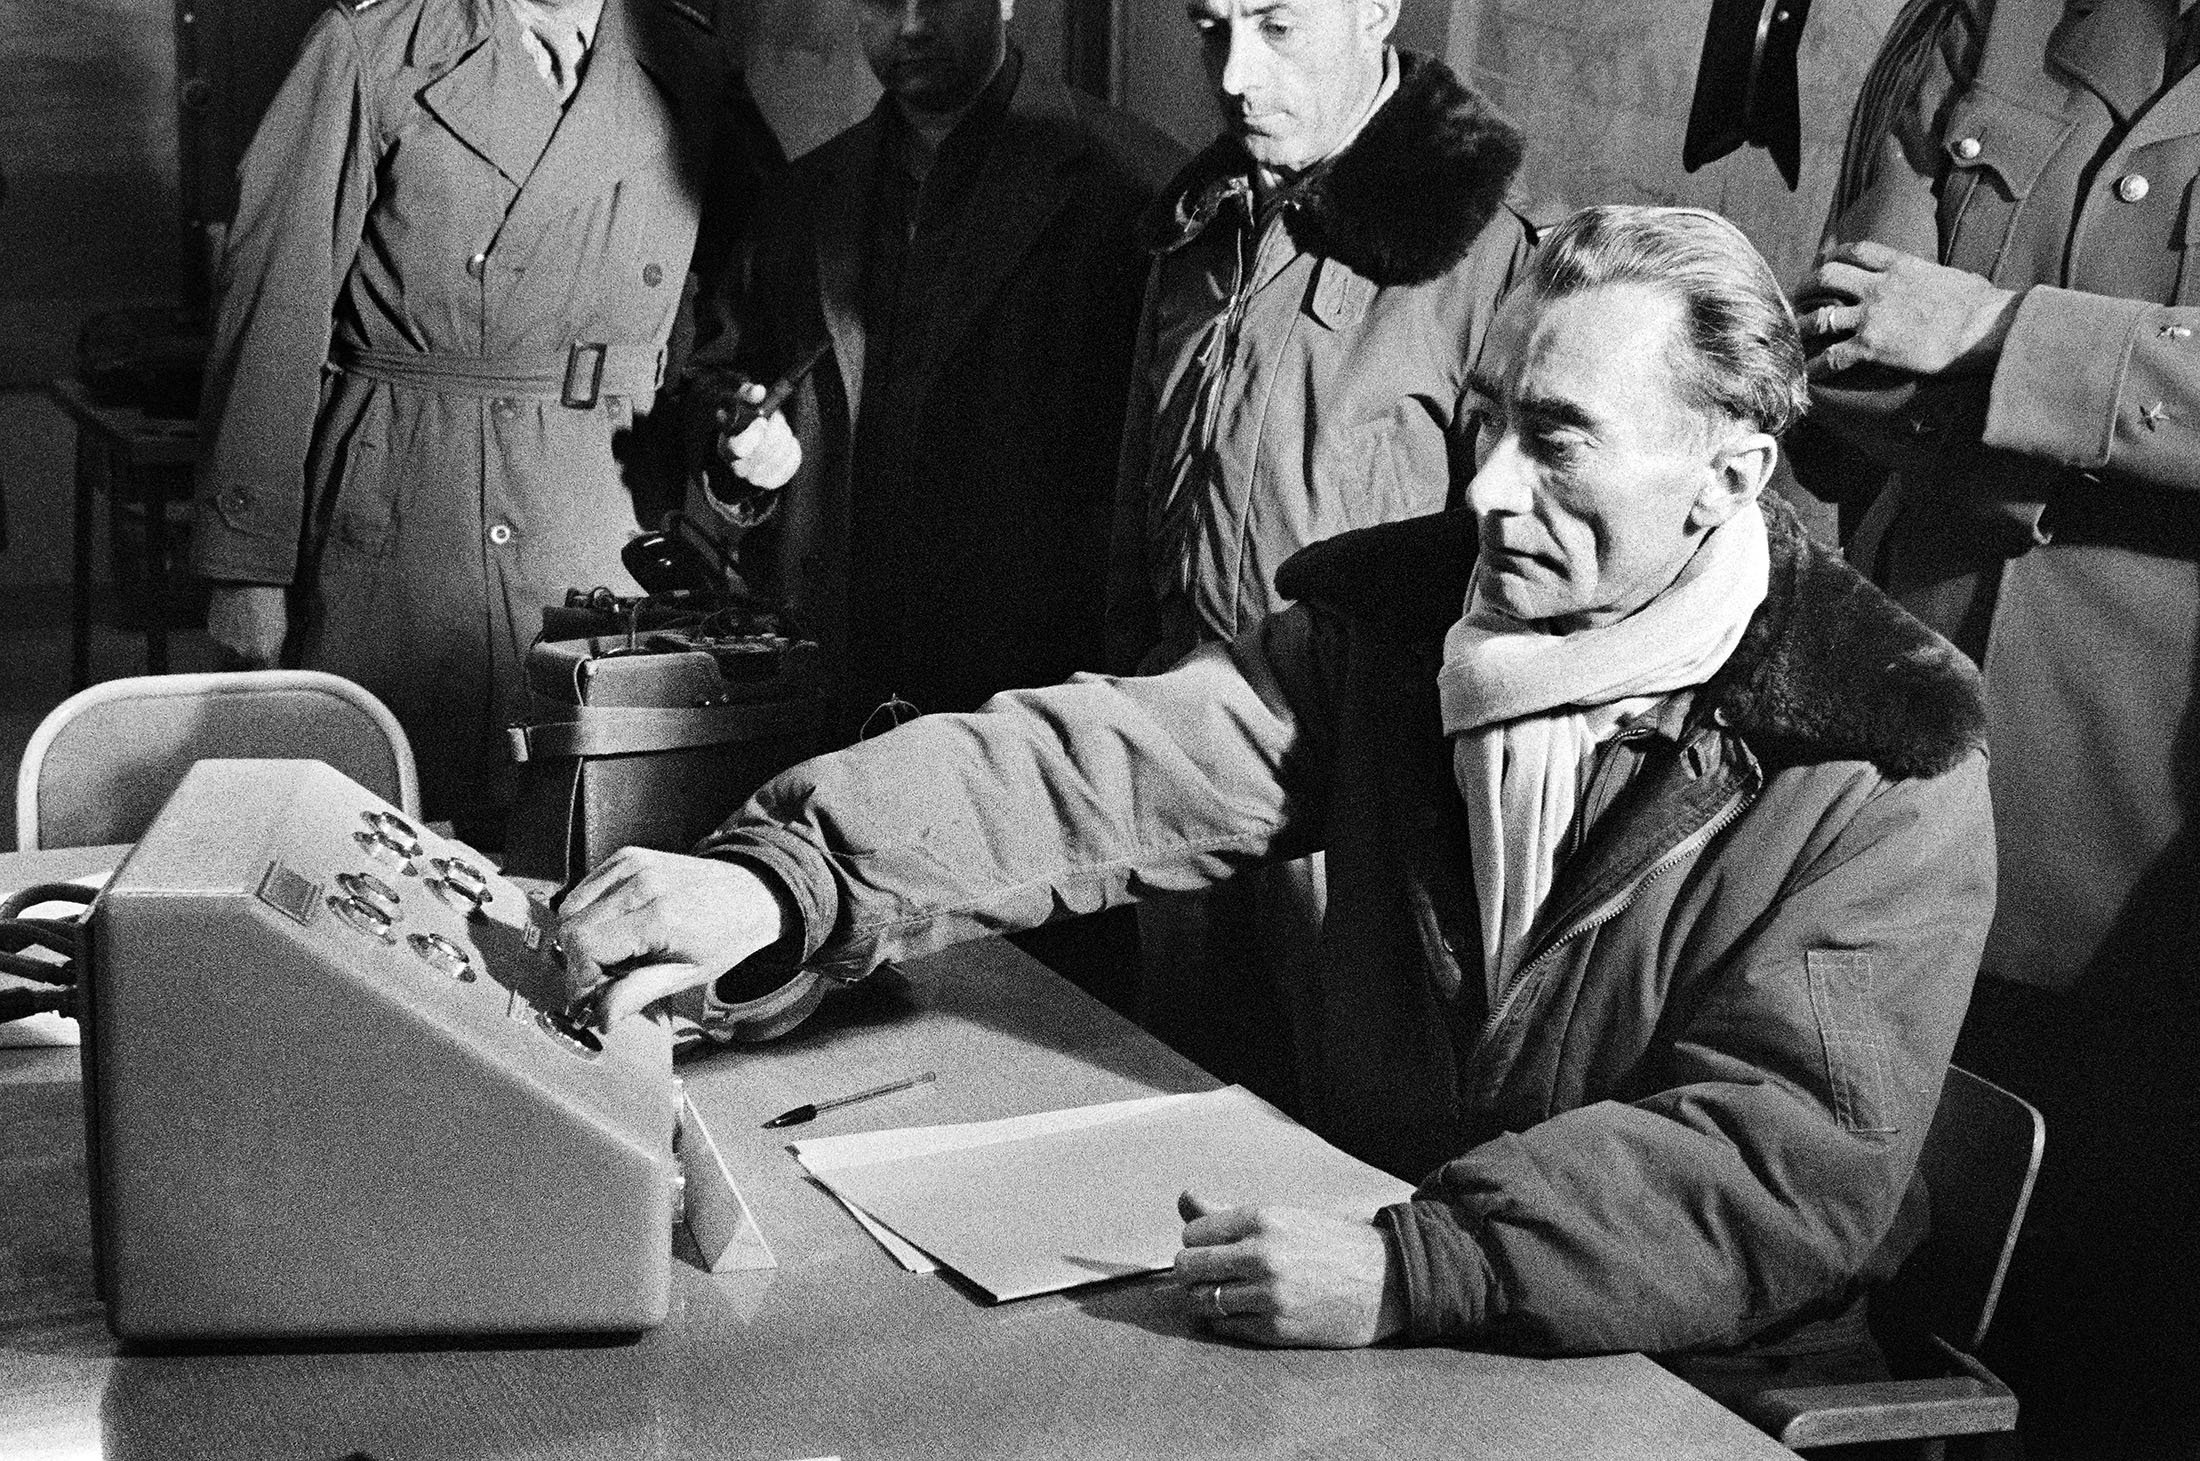 French Gen. Jean Thiry presses the button which triggers an explosion during the third French nuclear test at Reggane region in the Algerian Sahara as part of the operation called 'Gerboise rouge,' Dec. 27, 1960. (AFP Photo)